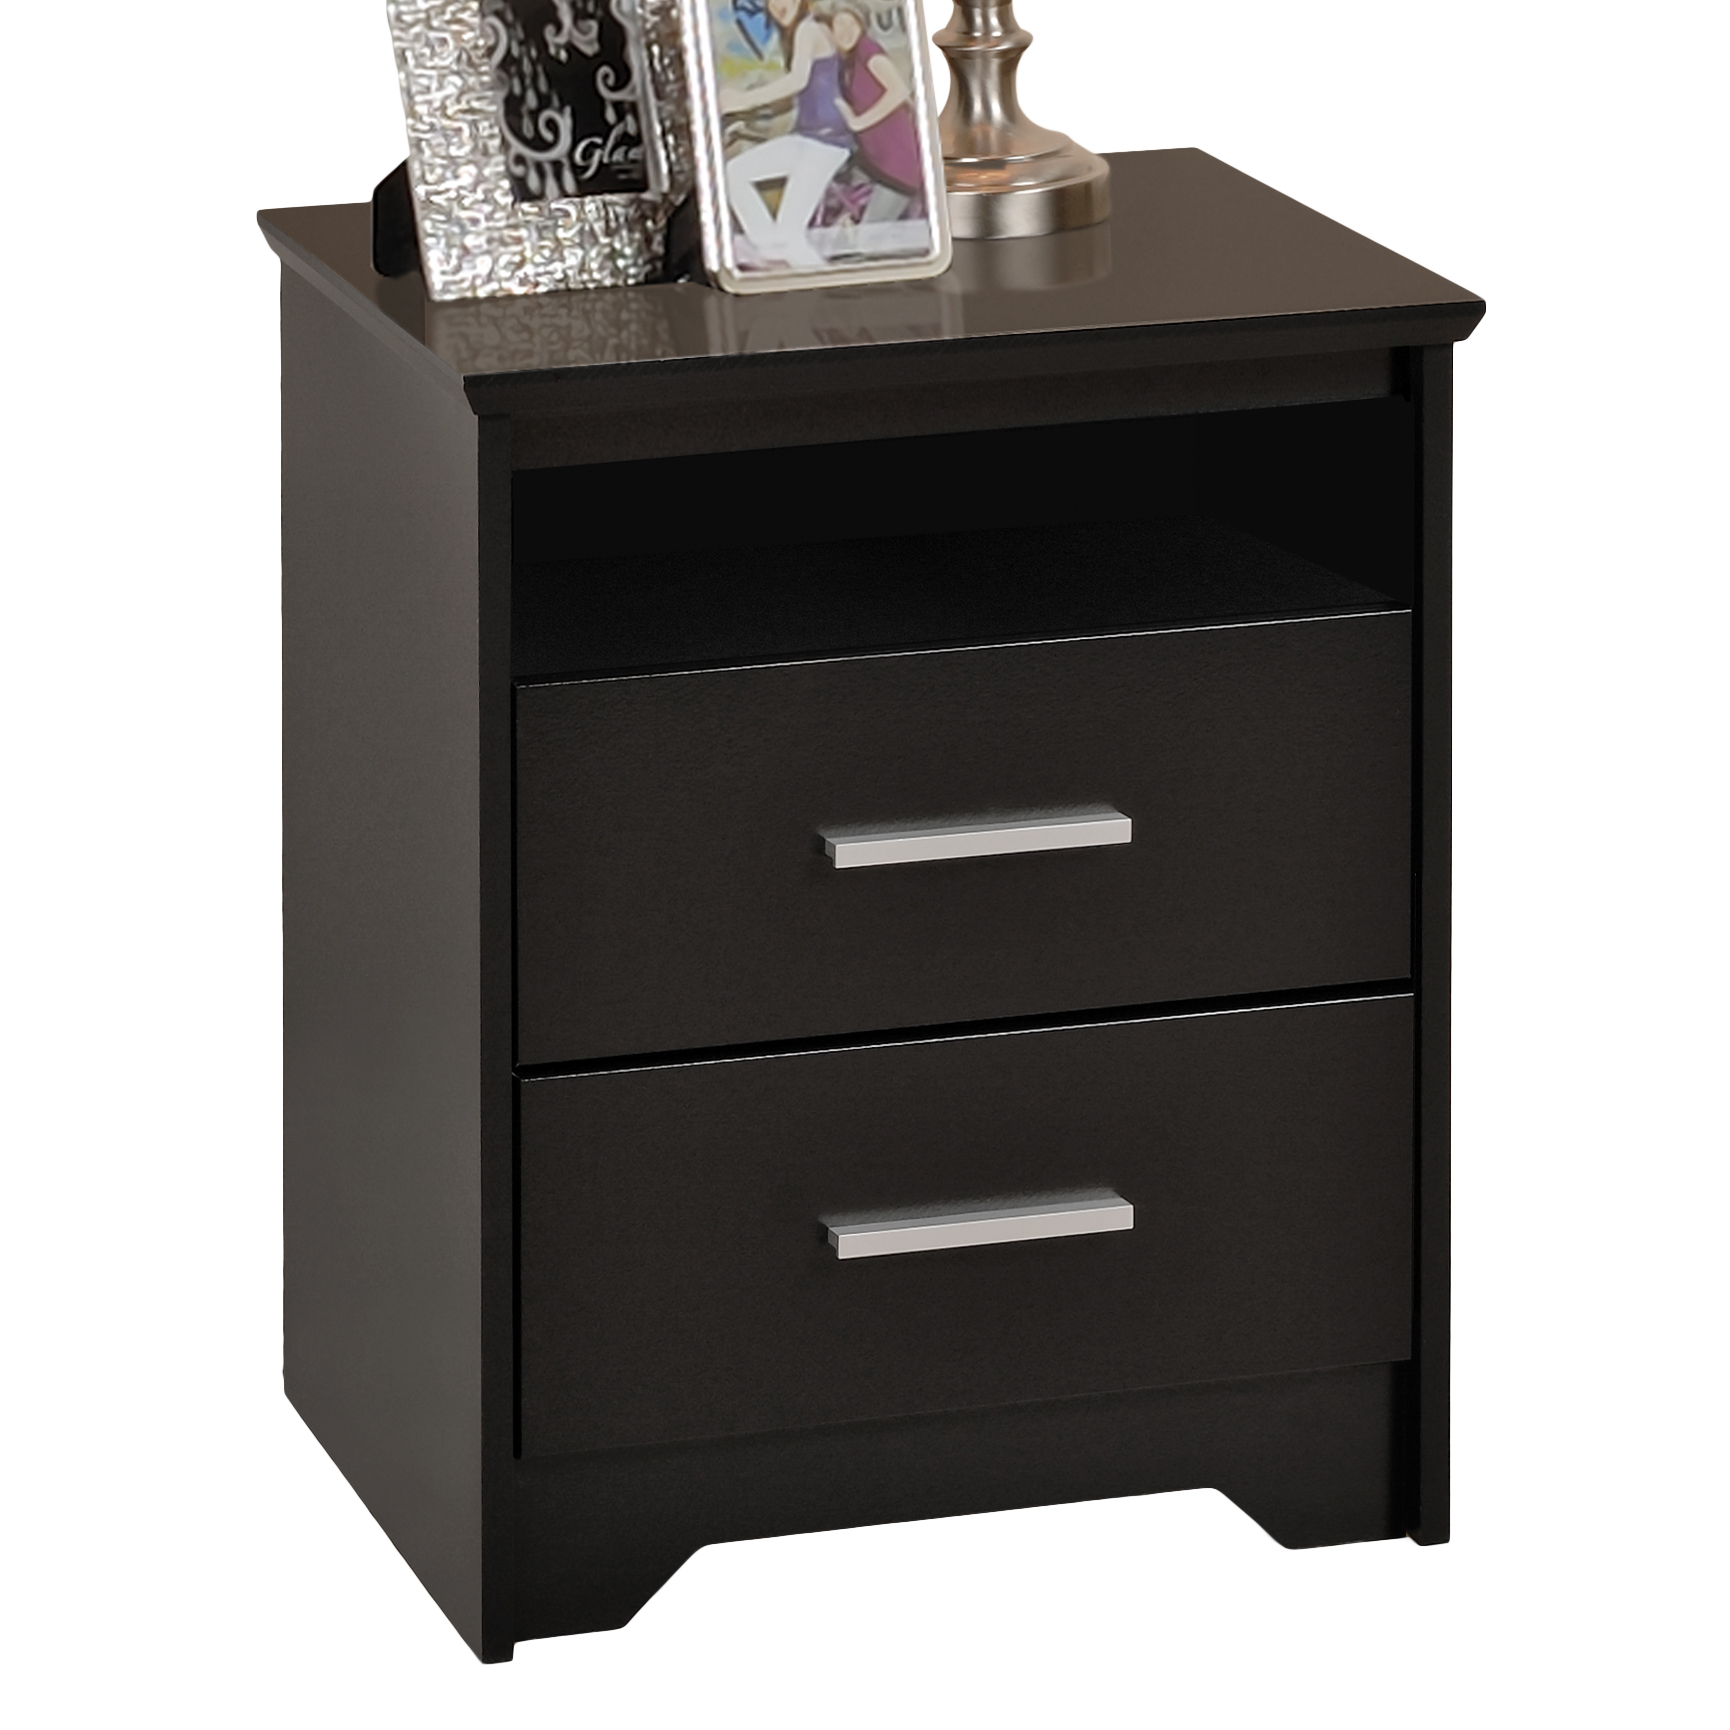 Coal Harbor Tall 2 Drawer Night Stand With Open Shelf